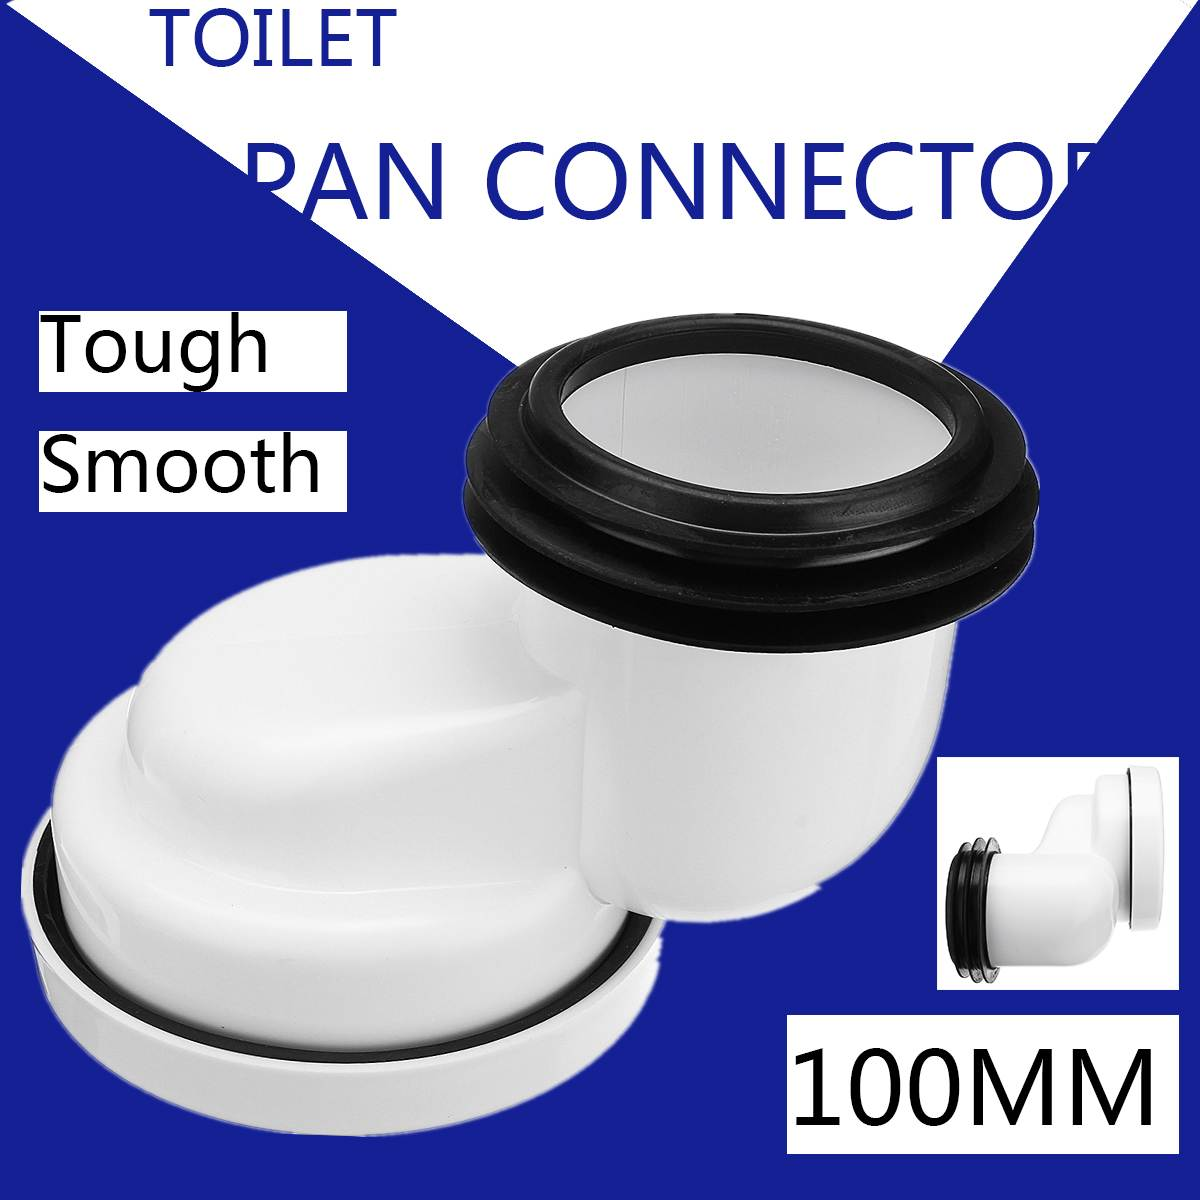 Permalink to 100mm PVC Offset Misaligned Toilet WC Waste Pan Connector Bowl Smooth Soil Pipe White PVC Bathroom Toilets Parts Accessories